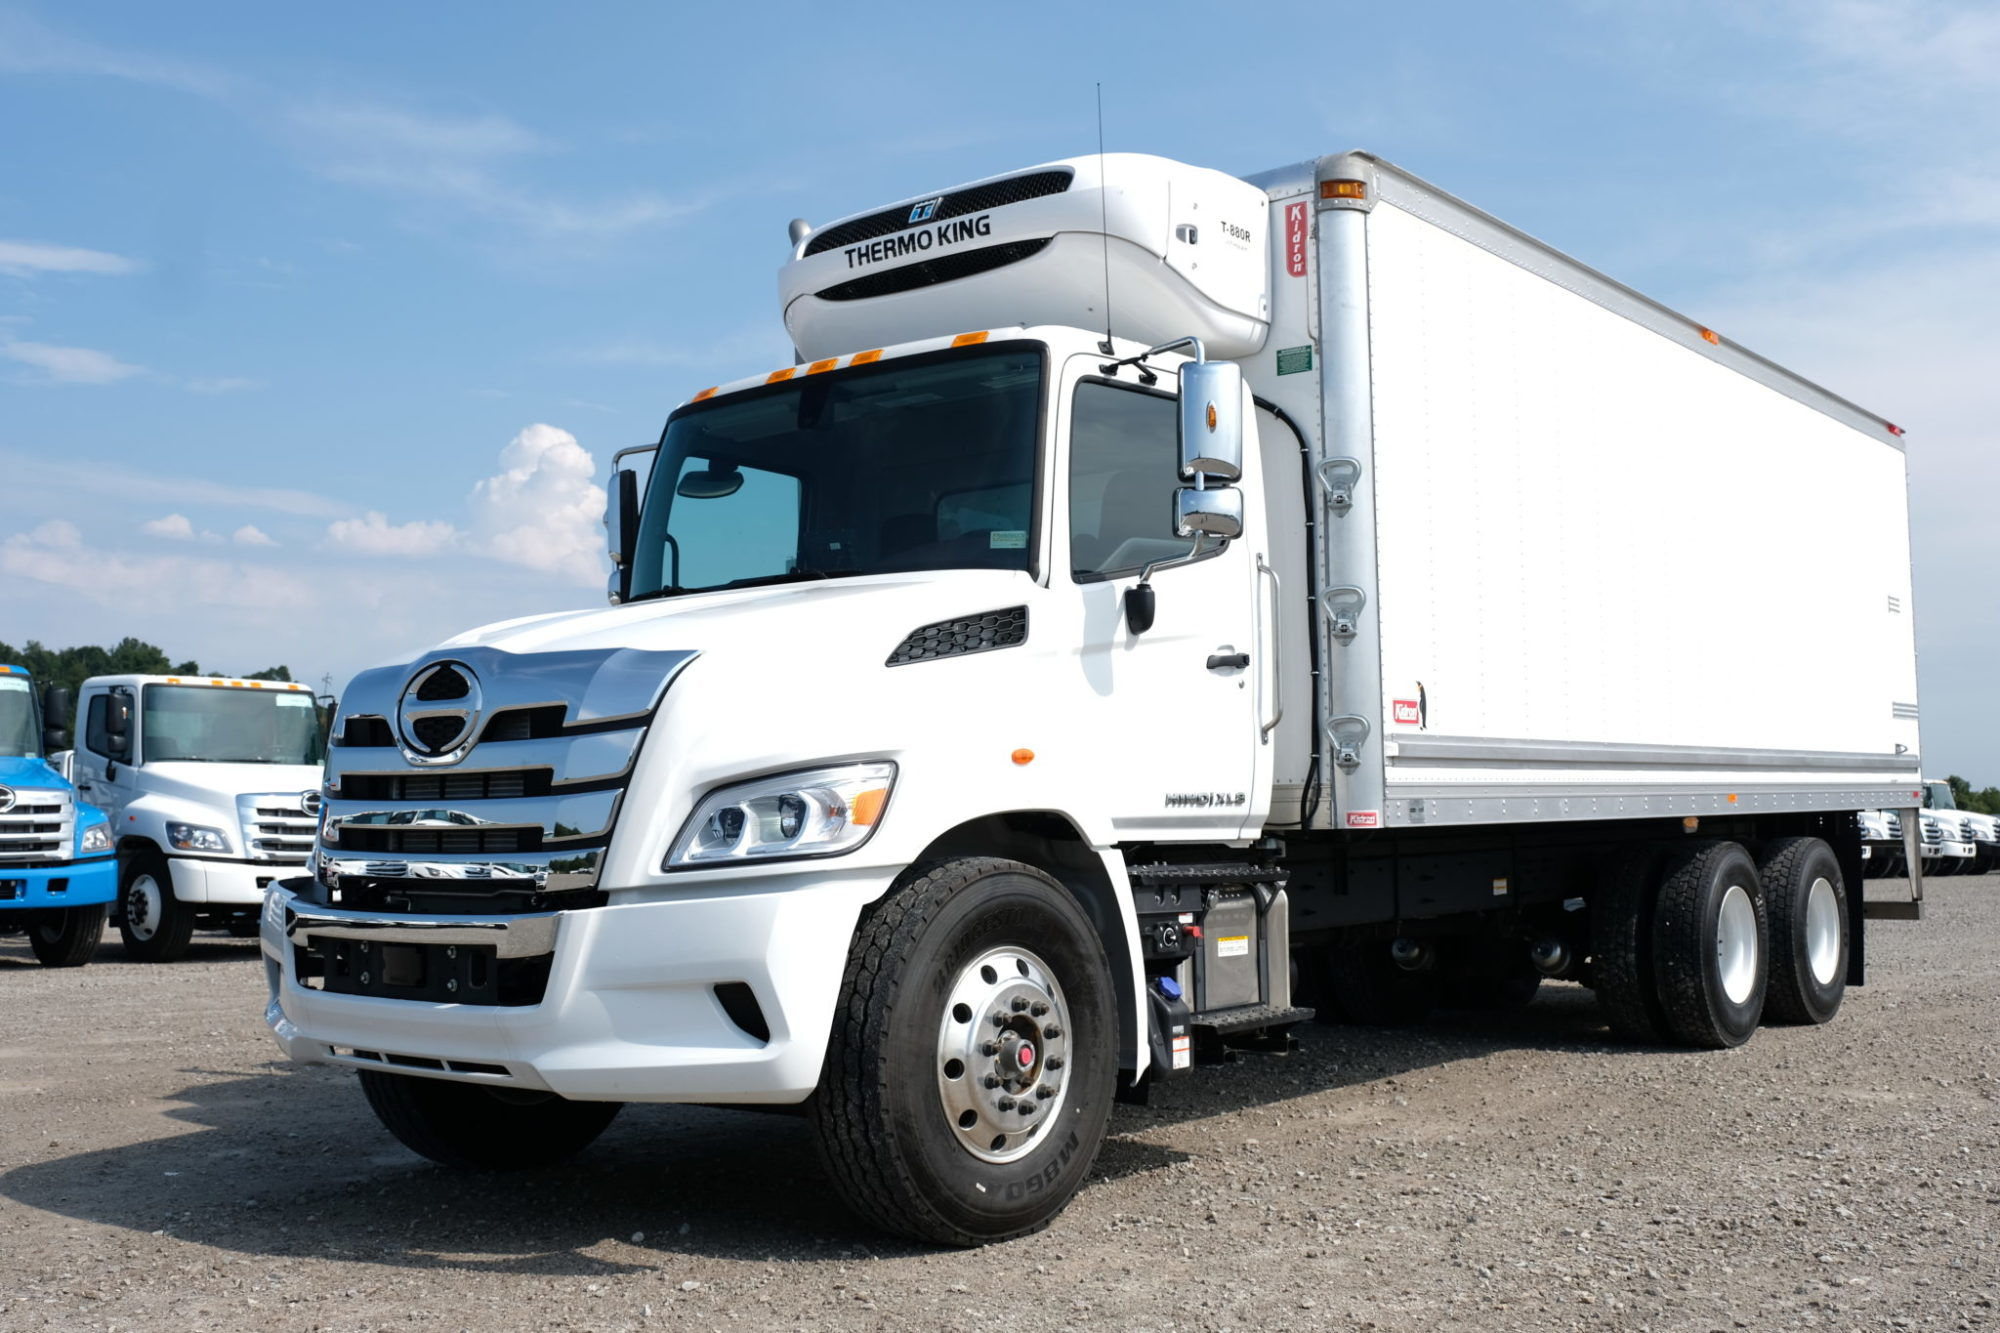 test drive Archives | Today's TruckingToday's Trucking